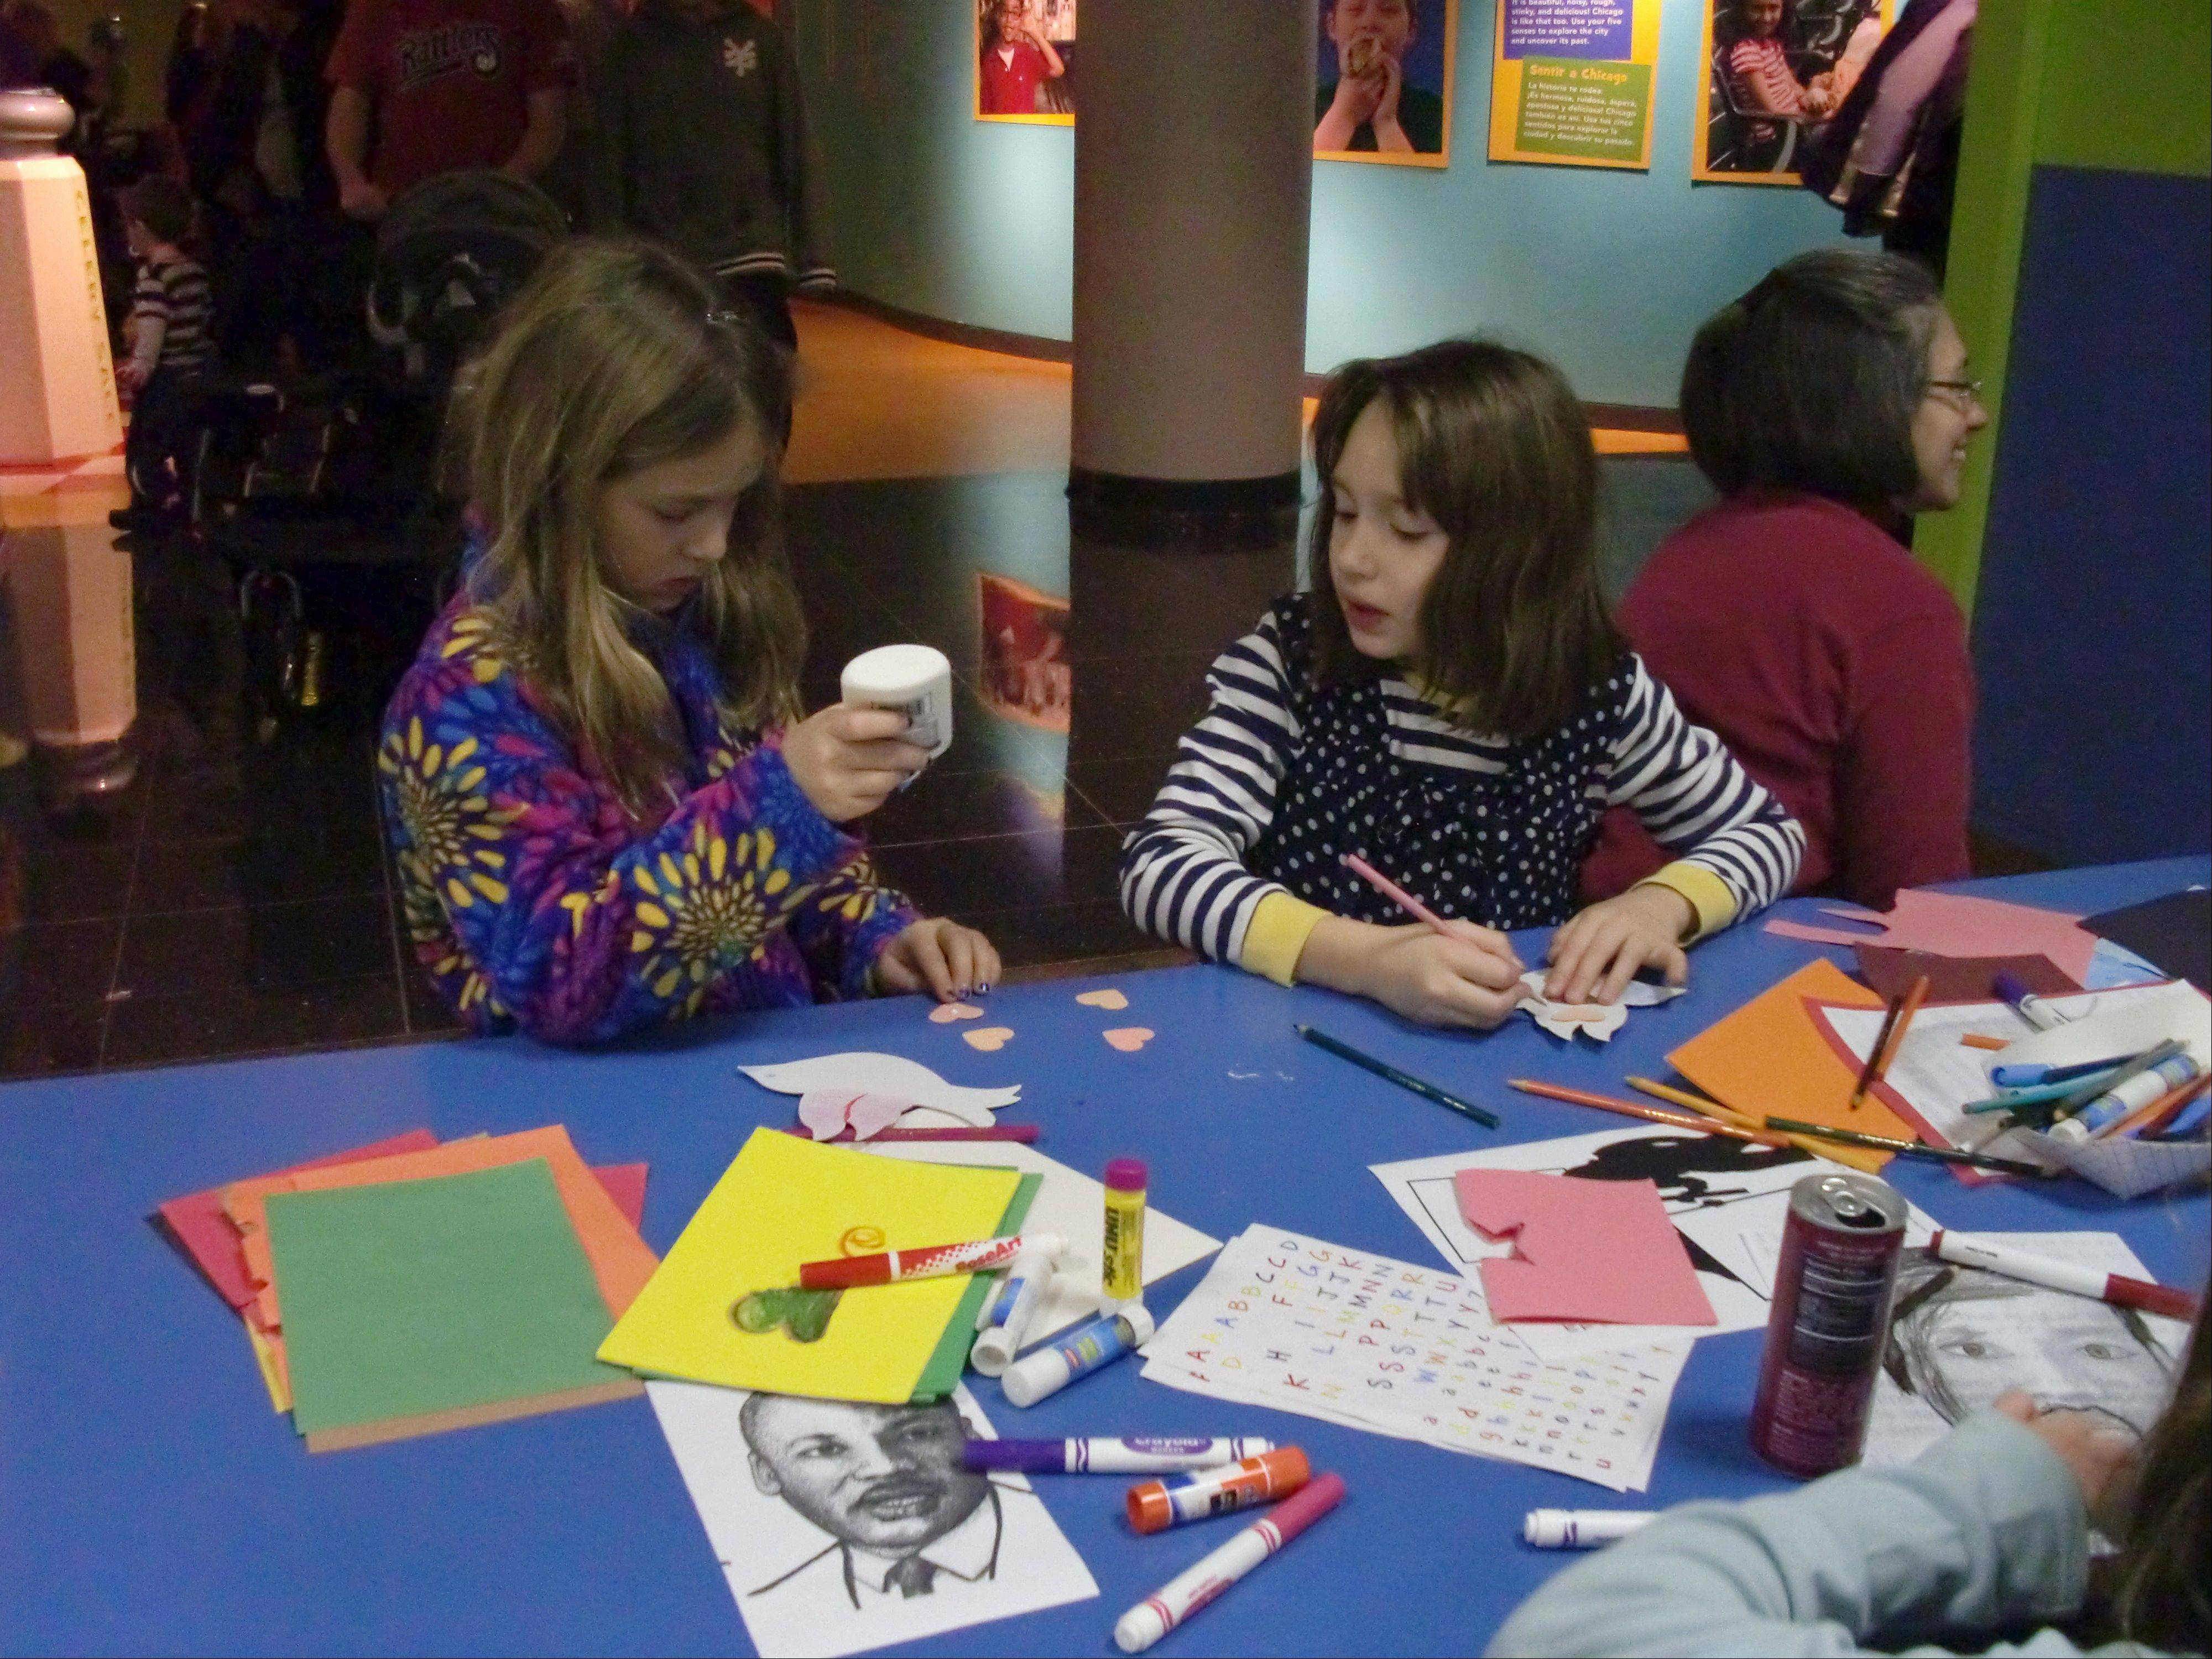 The Chicago History Museum hosts a variety of activities for families during Discover Chicago.